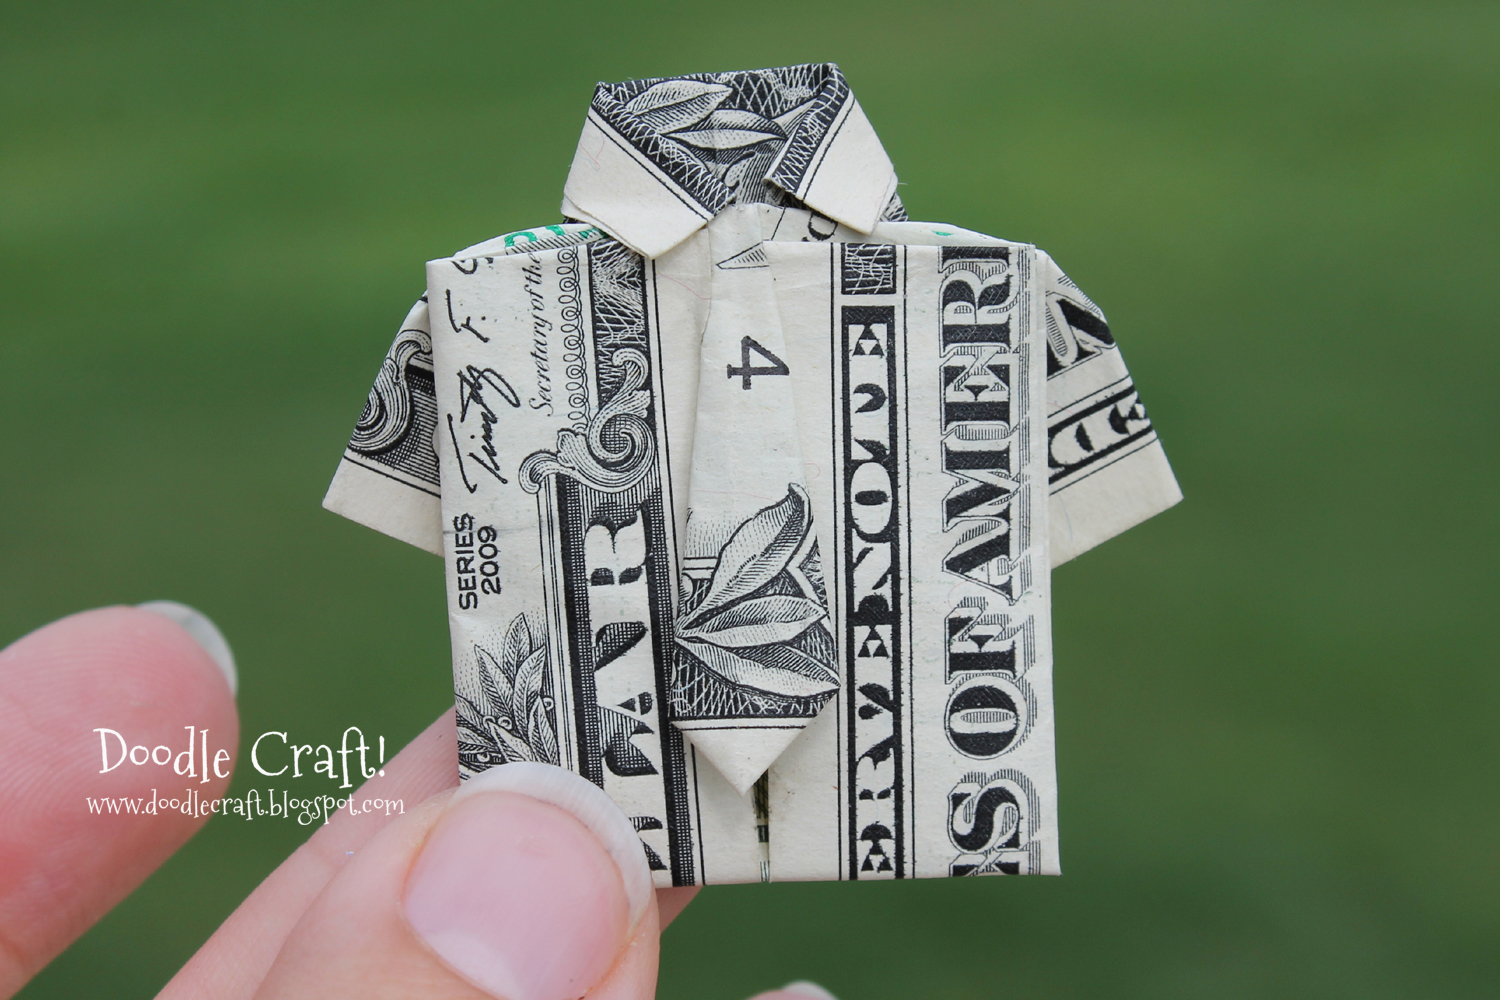 Doodlecraft: Origami Money folding: Shirt and Tie! - photo#13